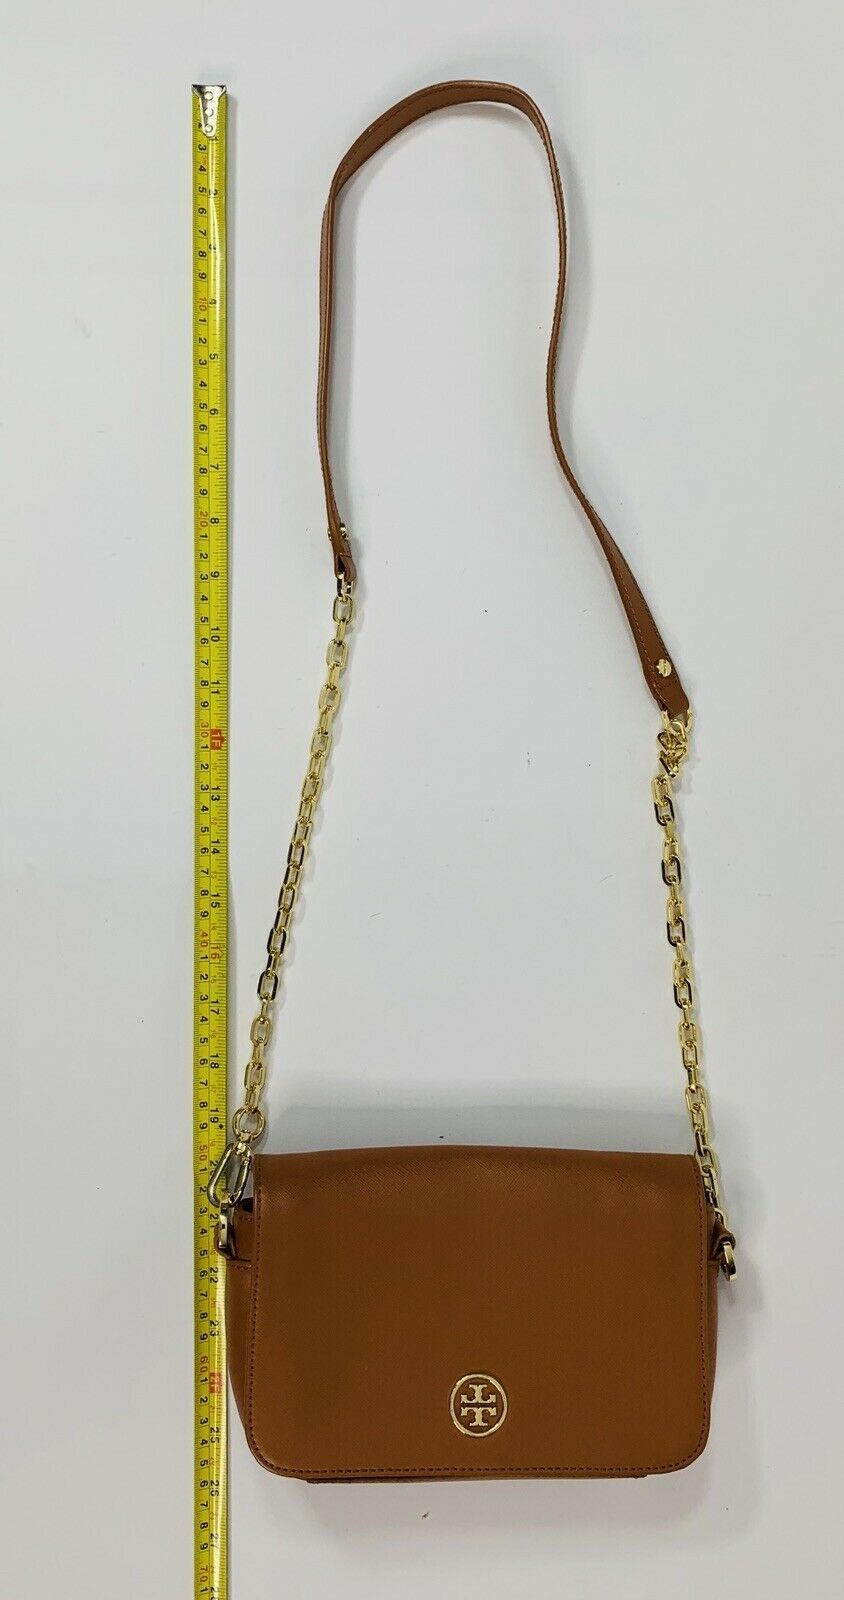 Tory Burch Robinson Chain Strap Tiger's Eye Brown Leather Crossbody Bag image 6